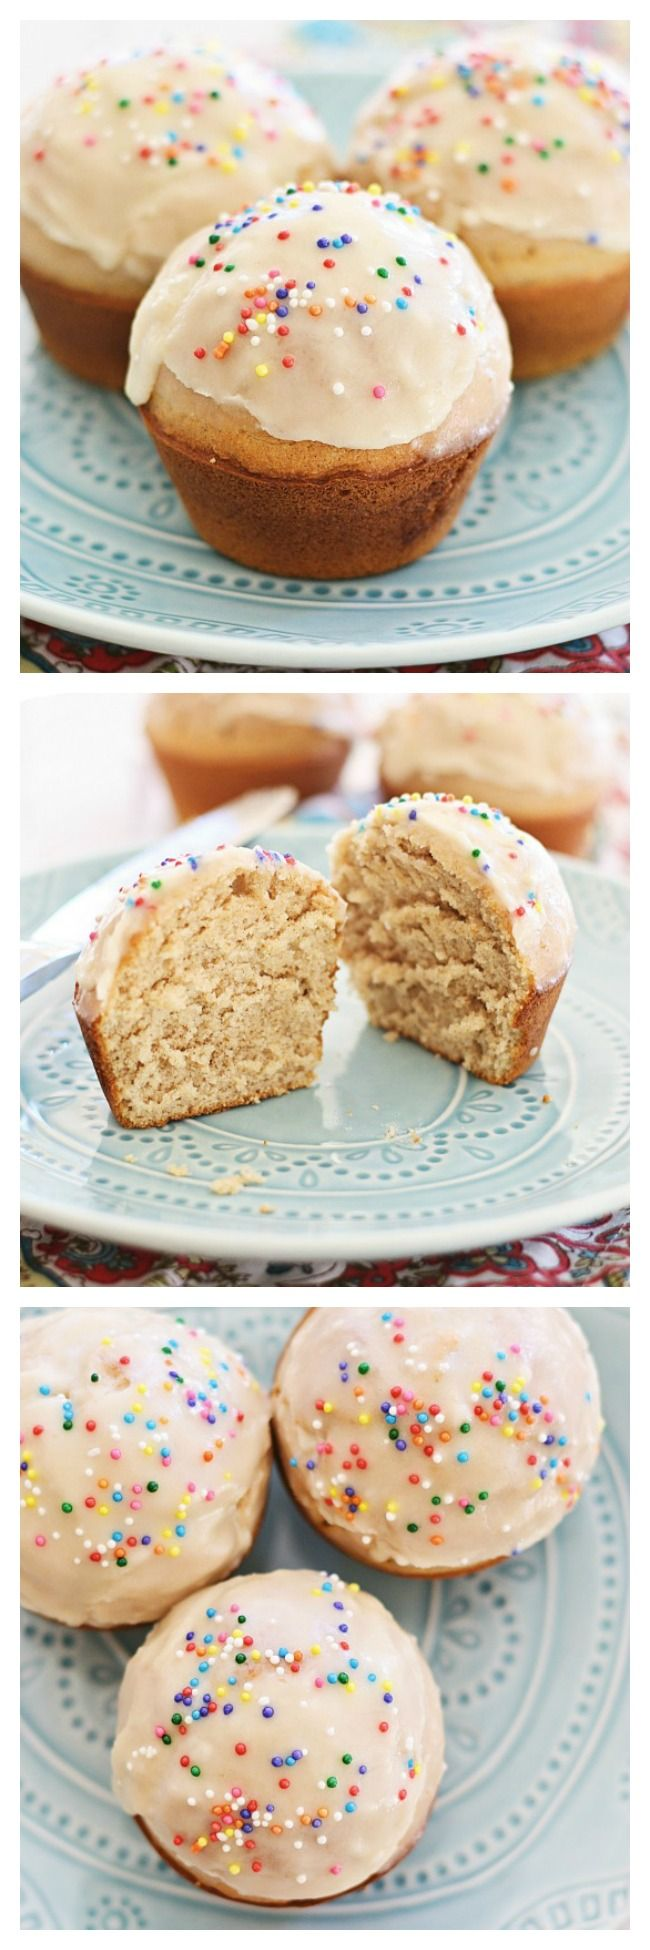 Glazed Doughnut Muffins recipe by combining two favorites into one ...